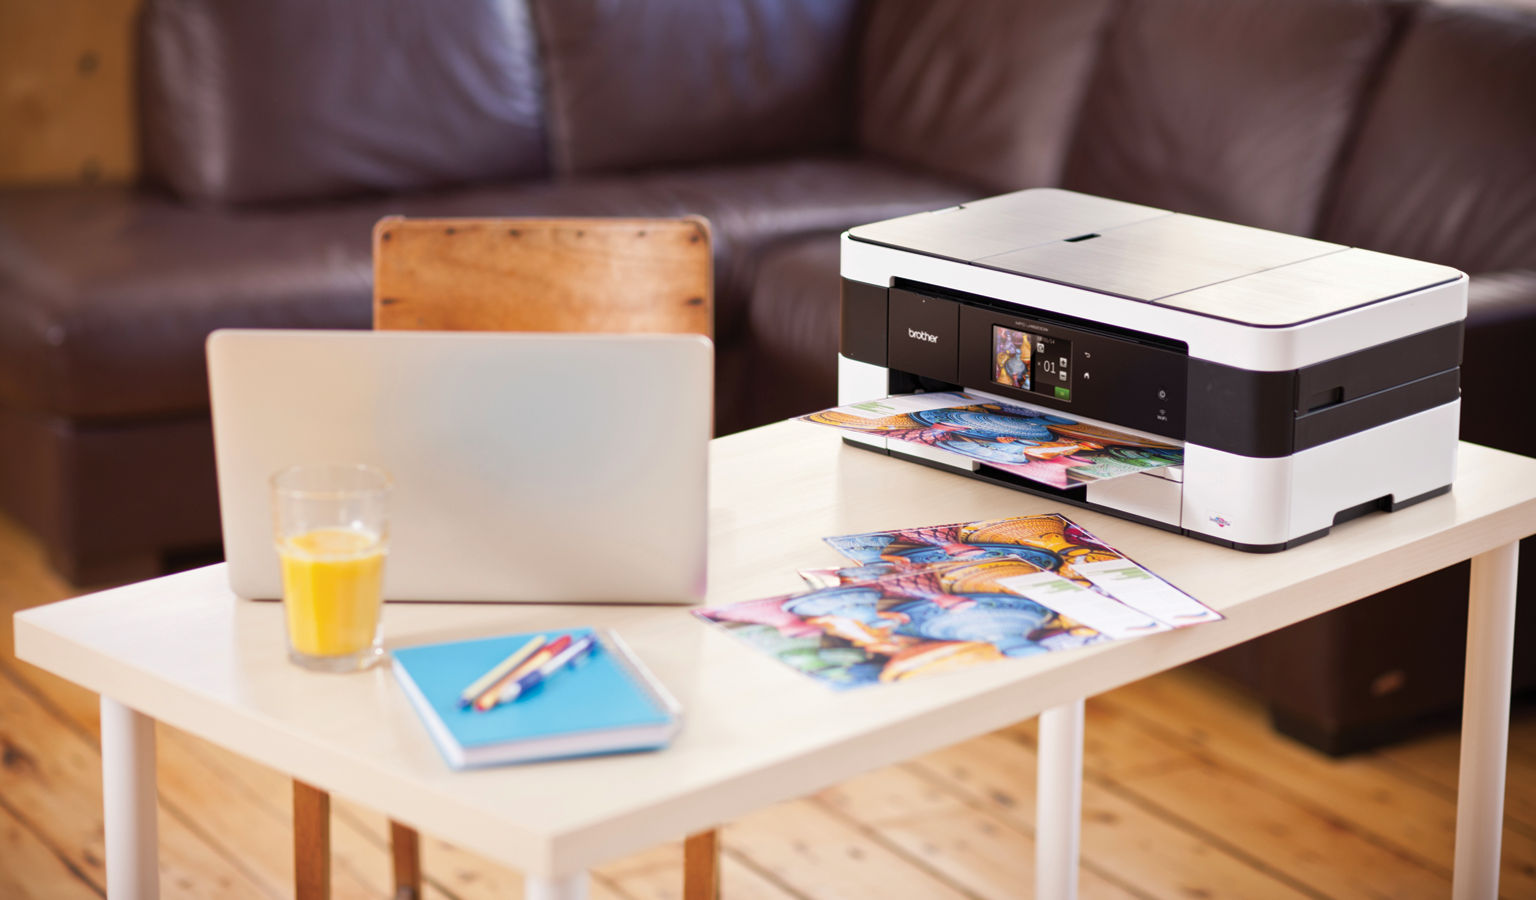 Stampante multifunzione Print the Future Brother MFC-J4620DW in azione in casa su un tavolino